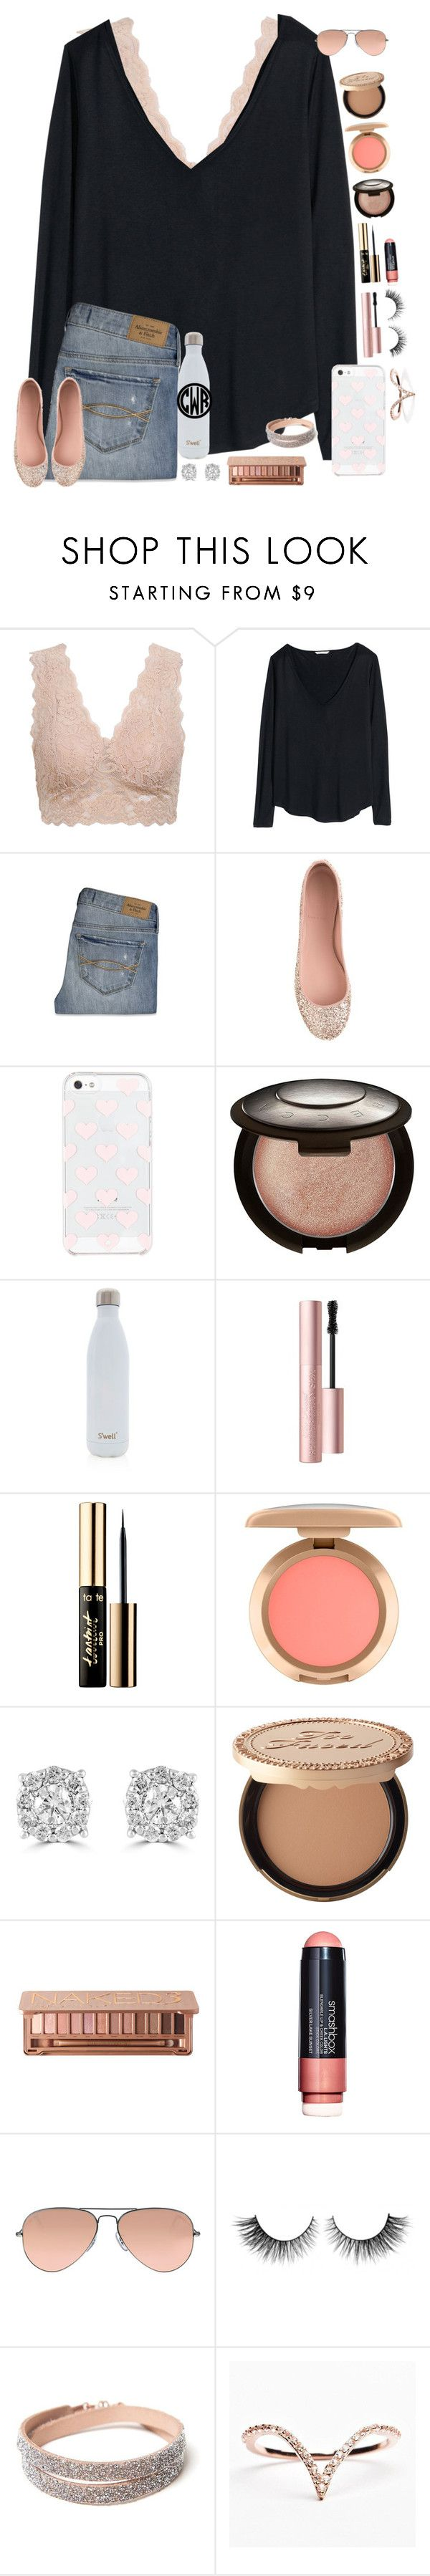 """""""i am a child of the moon being raised by the sun in a world walked by stars and a sky drawn with flowers"""" by taylor-austinxoxo ❤ liked on Polyvore featuring H&M, Abercrombie & Fitch, J.Crew, Kate Spade, Becca, S'well, Too Faced Cosmetics, tarte, Effy Jewelry and Urban Decay"""